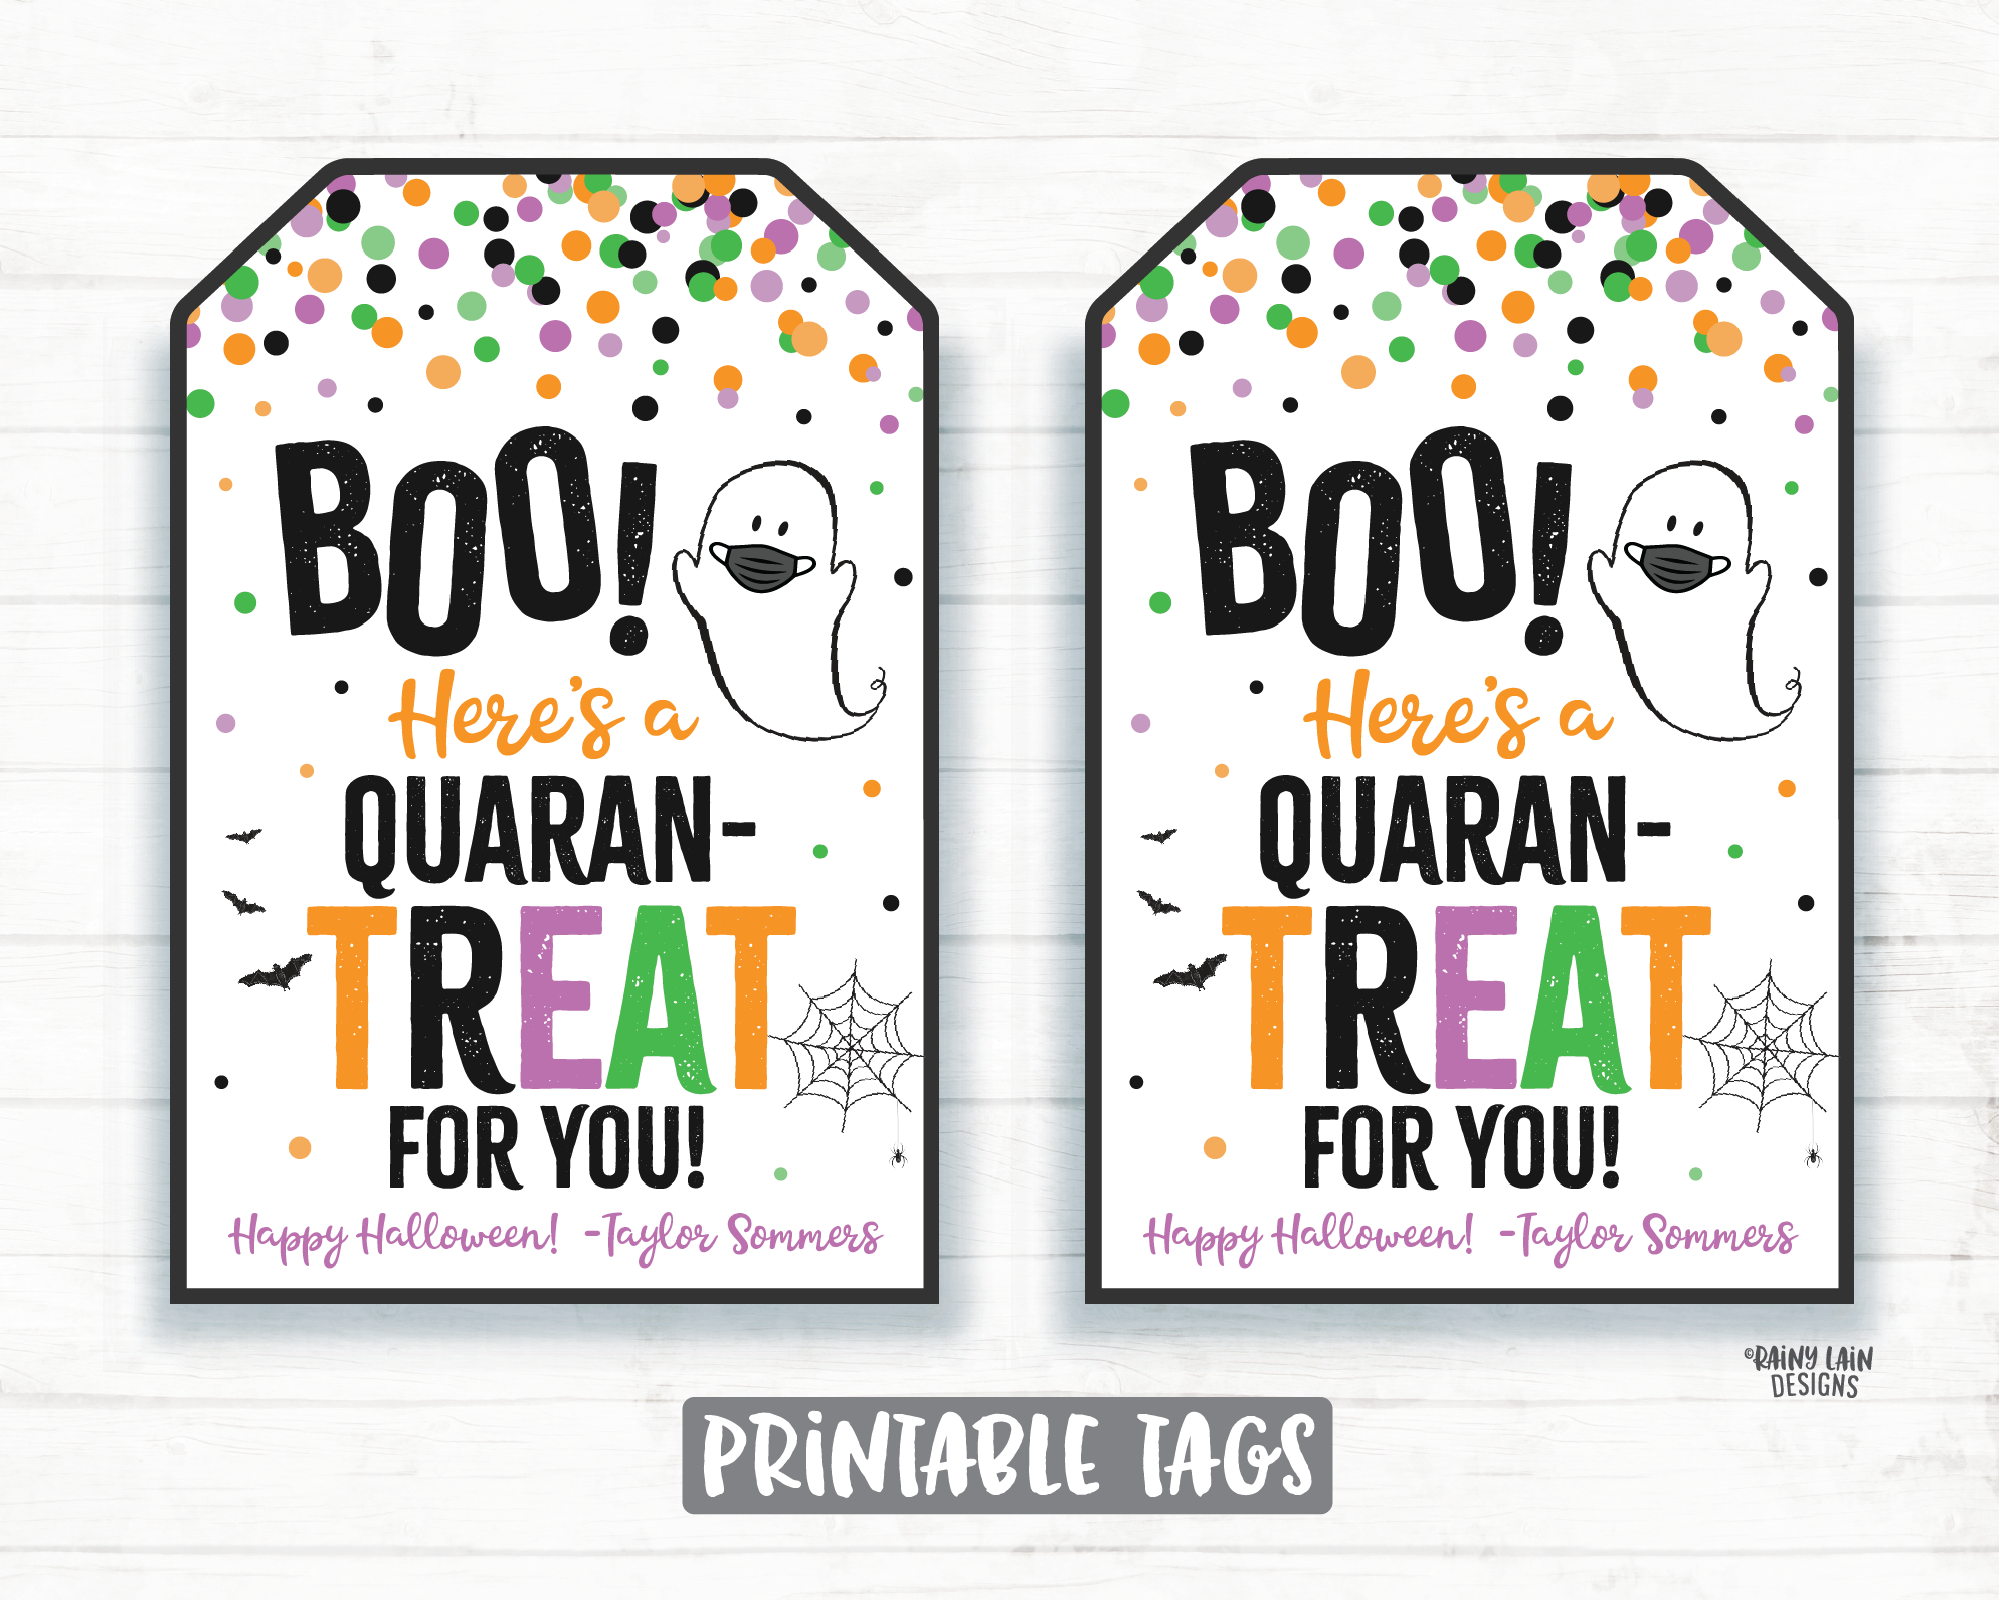 Boo Here's a Quaran-Treat for you Happy Quarantine Halloween Tags Halloween Favor Tags Mask Tags 2020 Pandemic Printable Halloween Editable